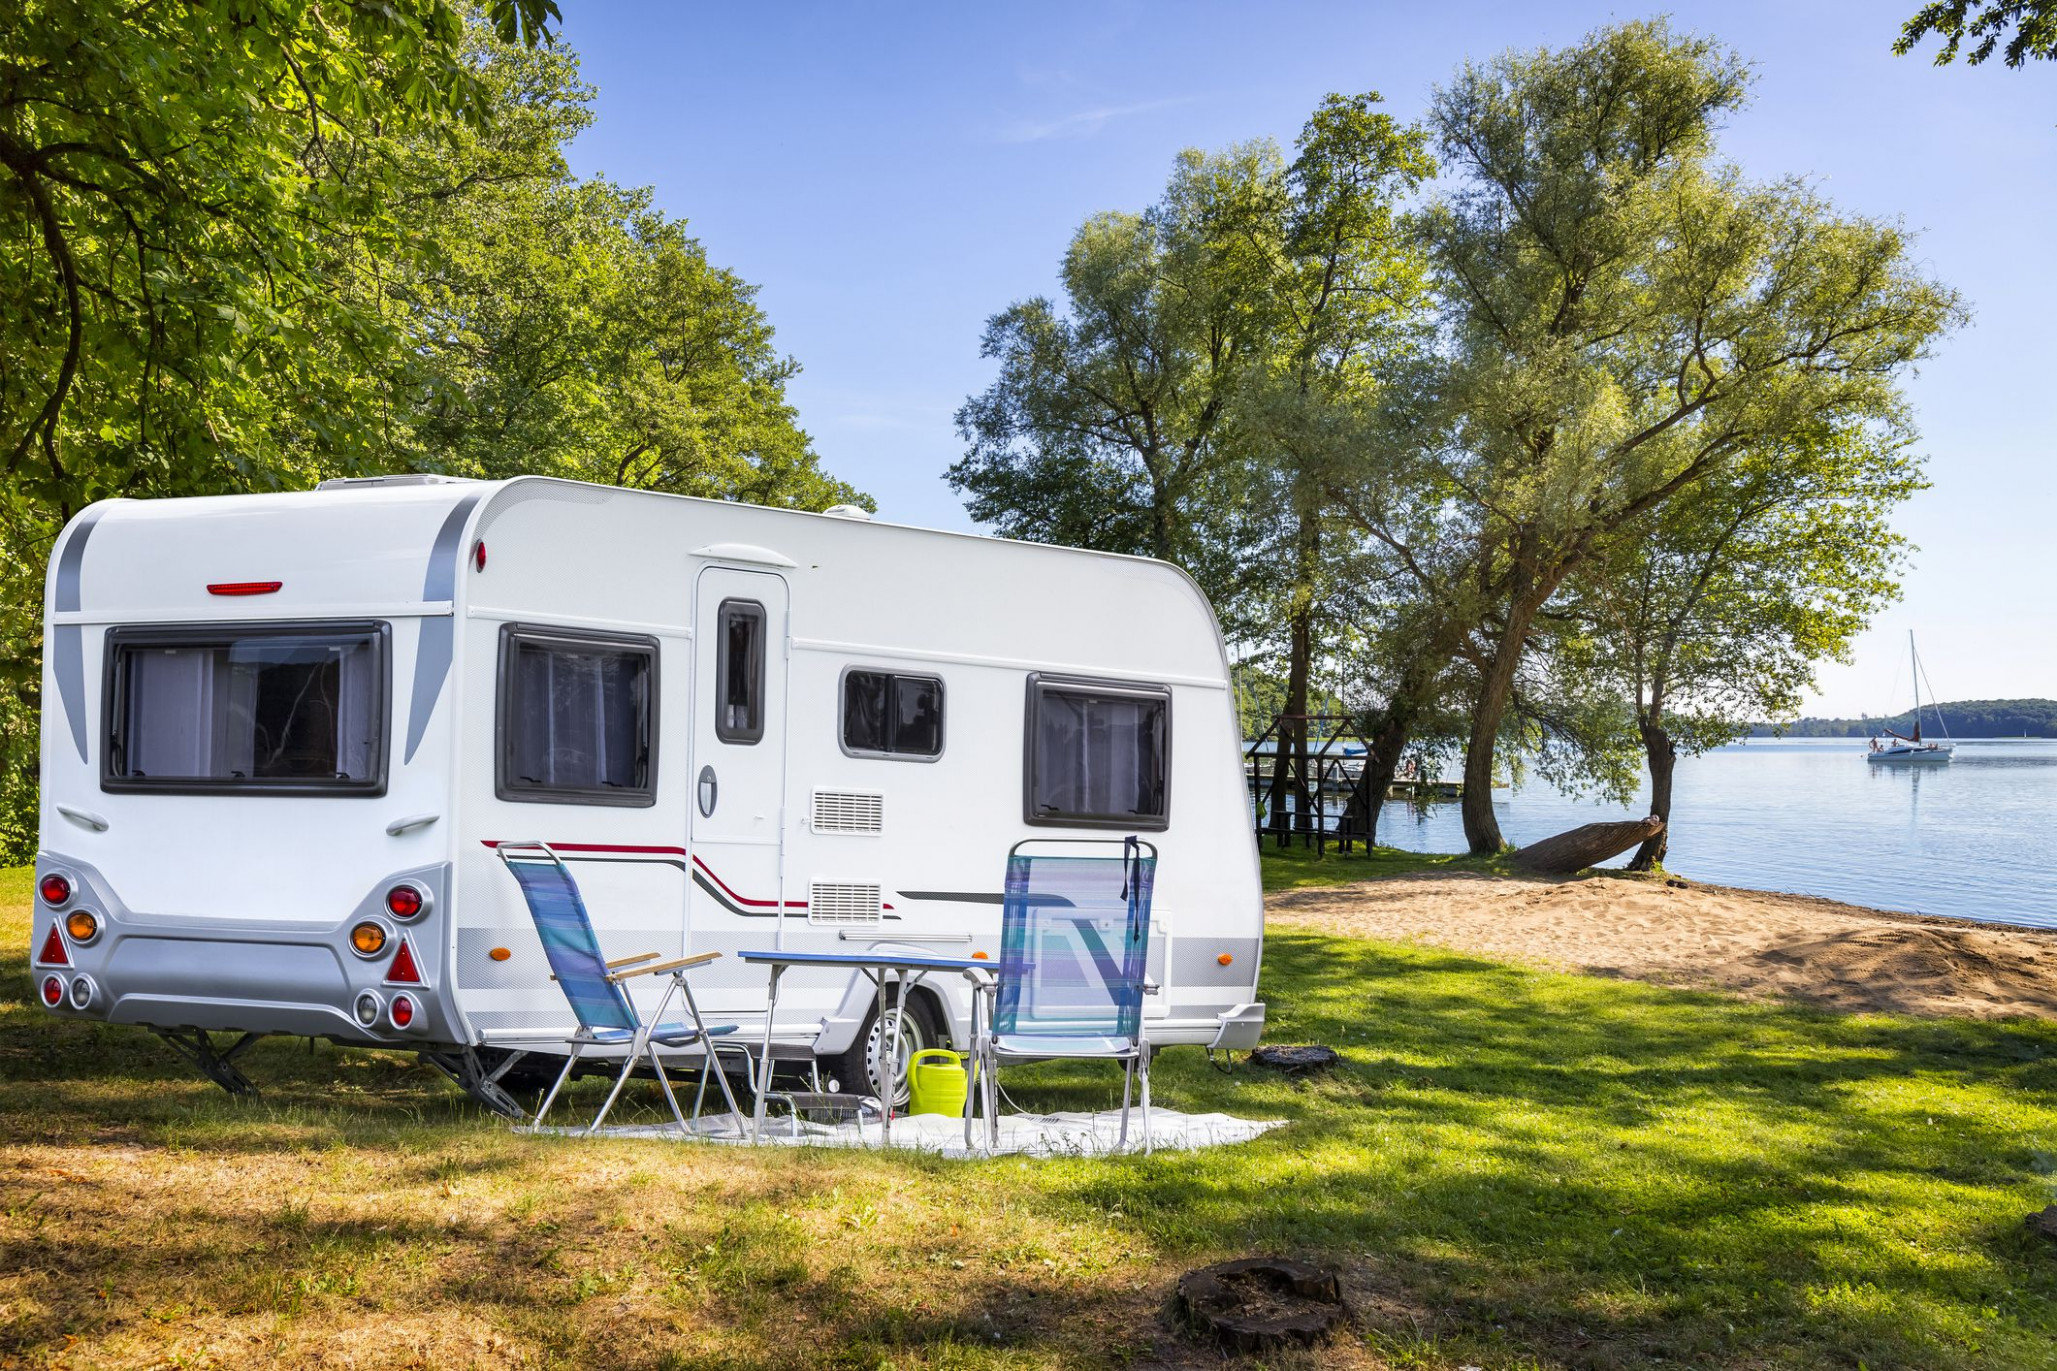 Should You Cover Your Camper Trailer With A Tarp? Tarp Carport Ideas